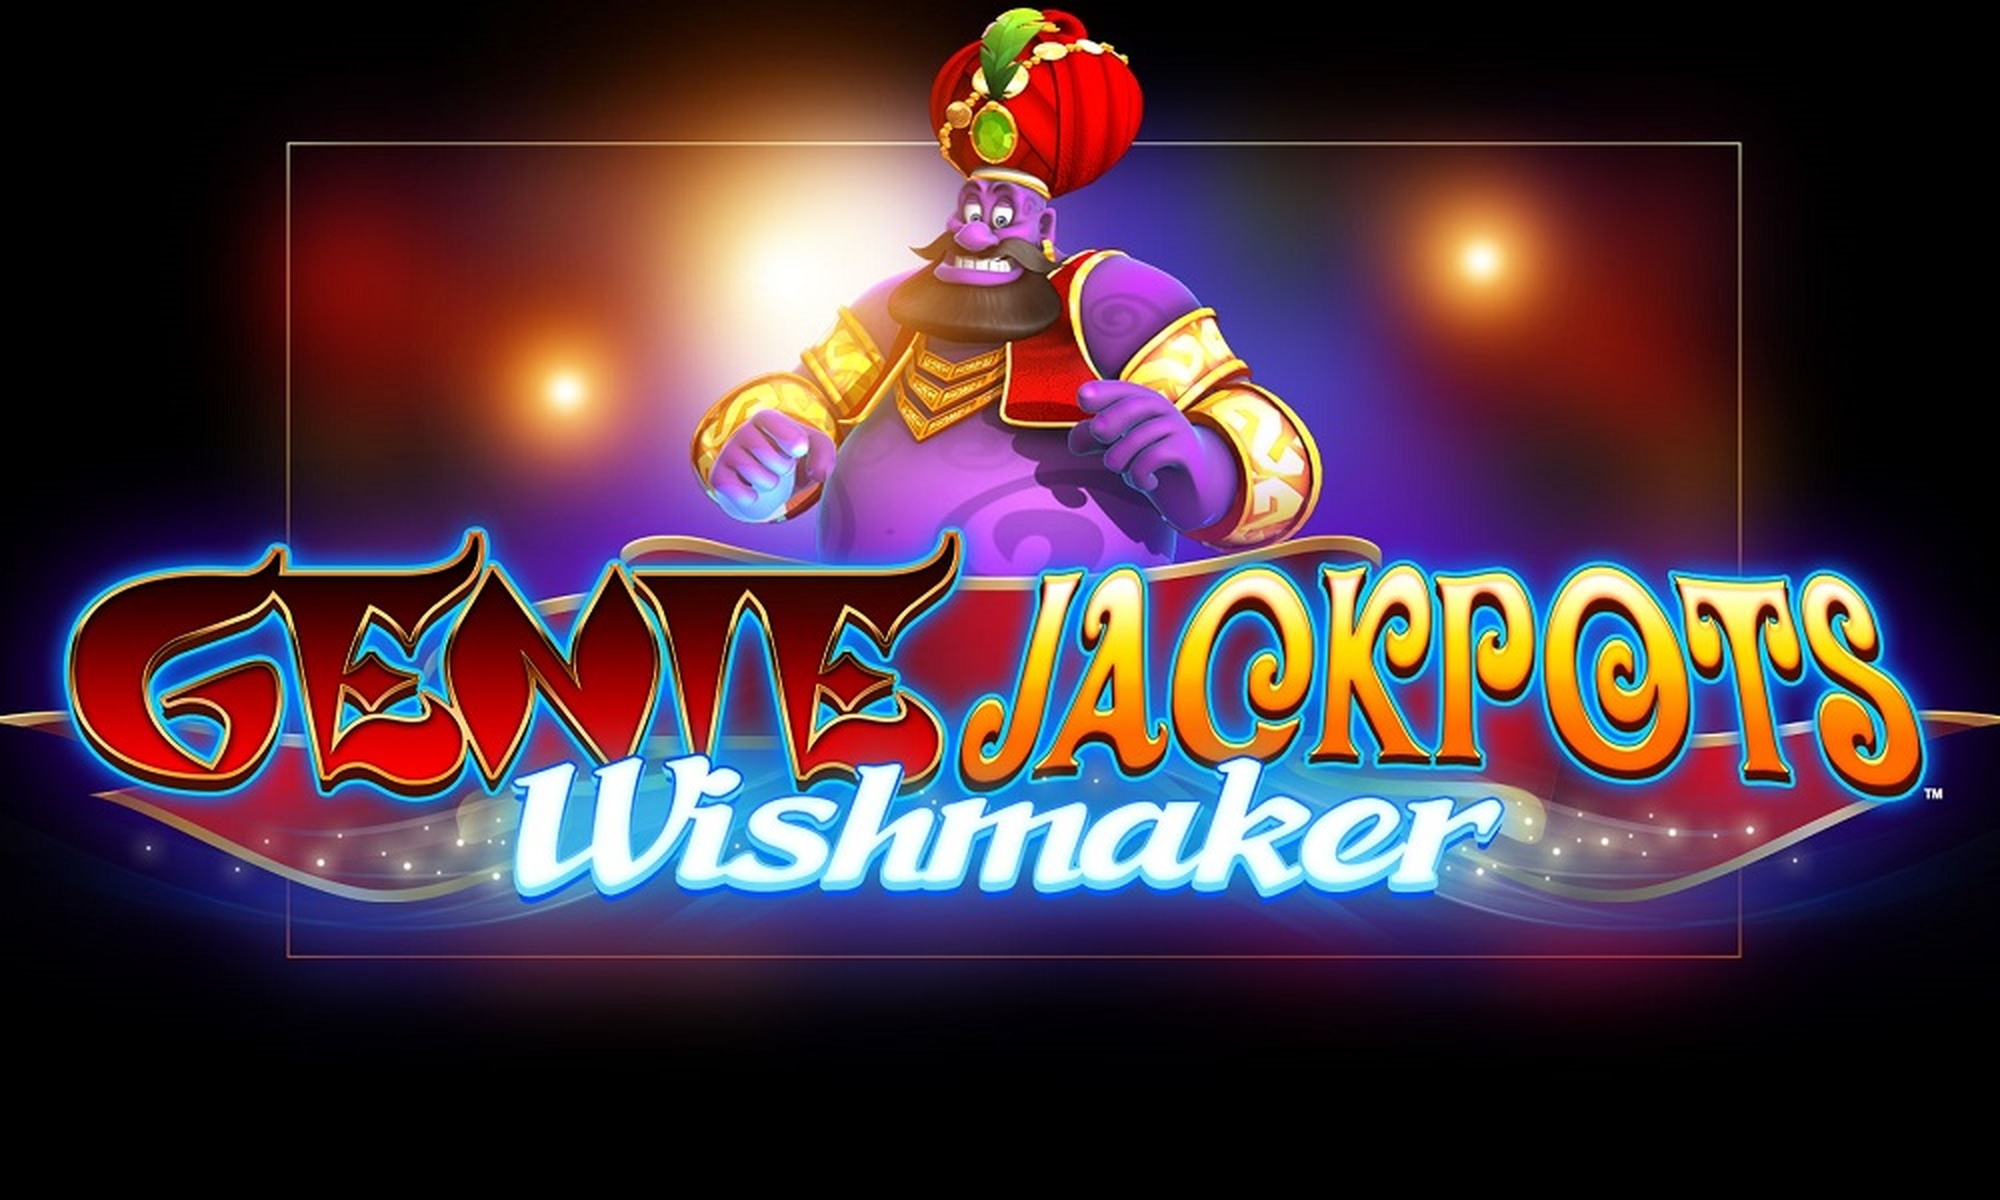 The Genie Jackpots Wishmaker Online Slot Demo Game by Blueprint Gaming